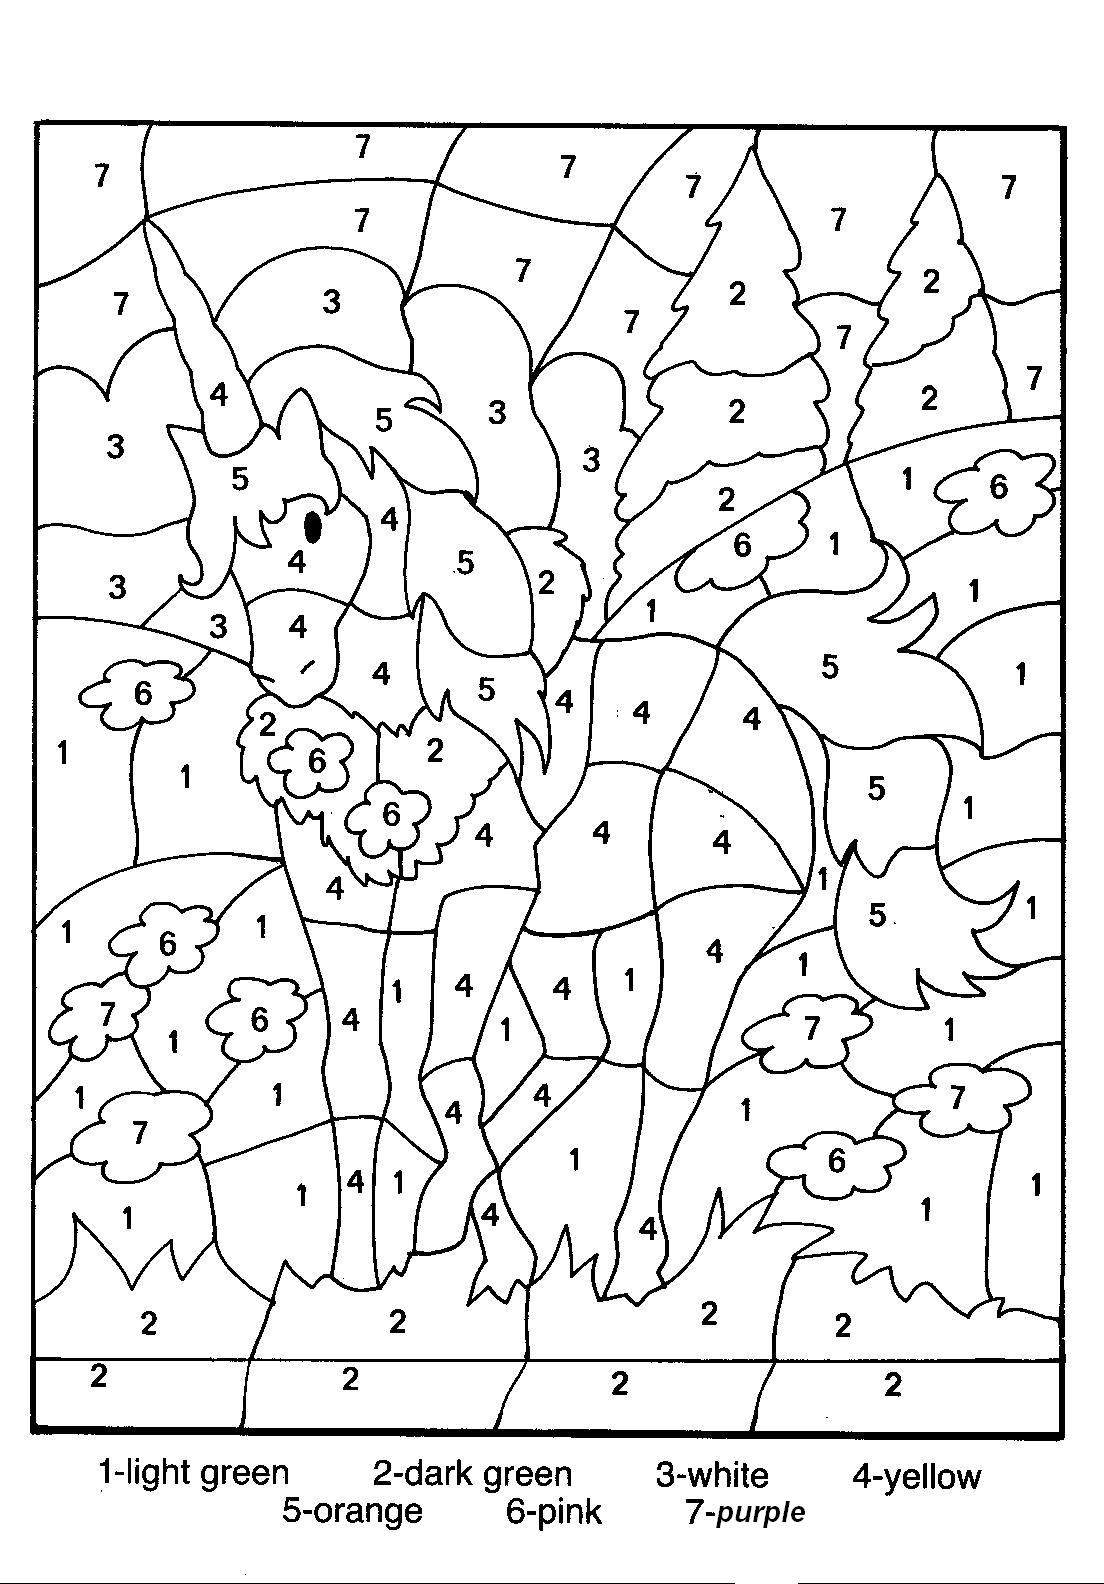 Coloring pages by numbers for adults - Free Printable Color By Number